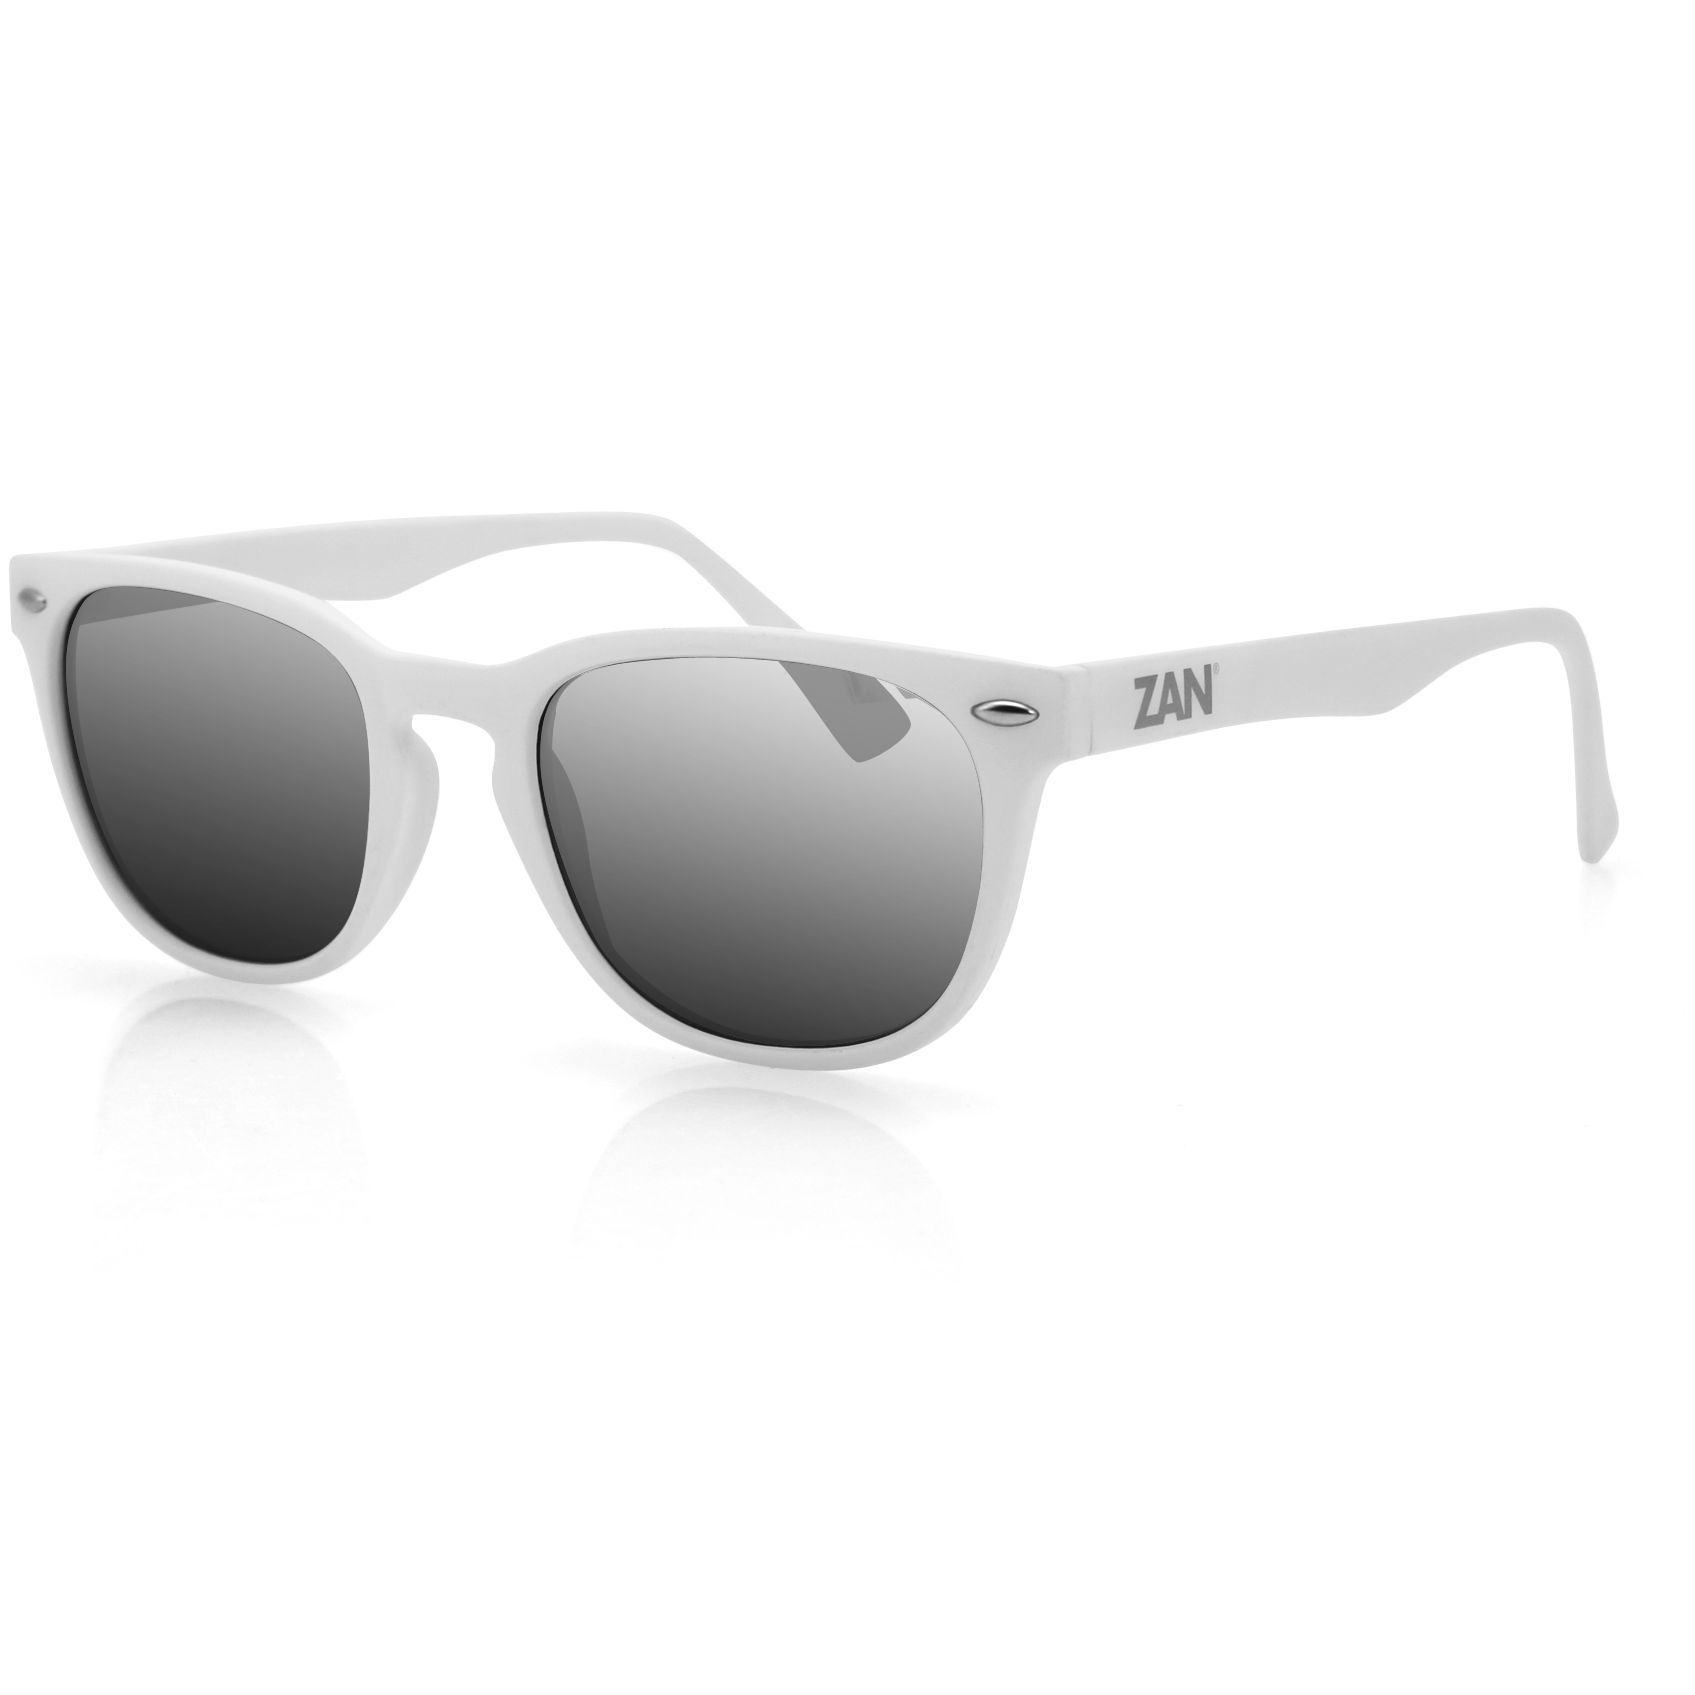 ZAN Throwback NVS Sunglasses Matte White Frame | Products ...